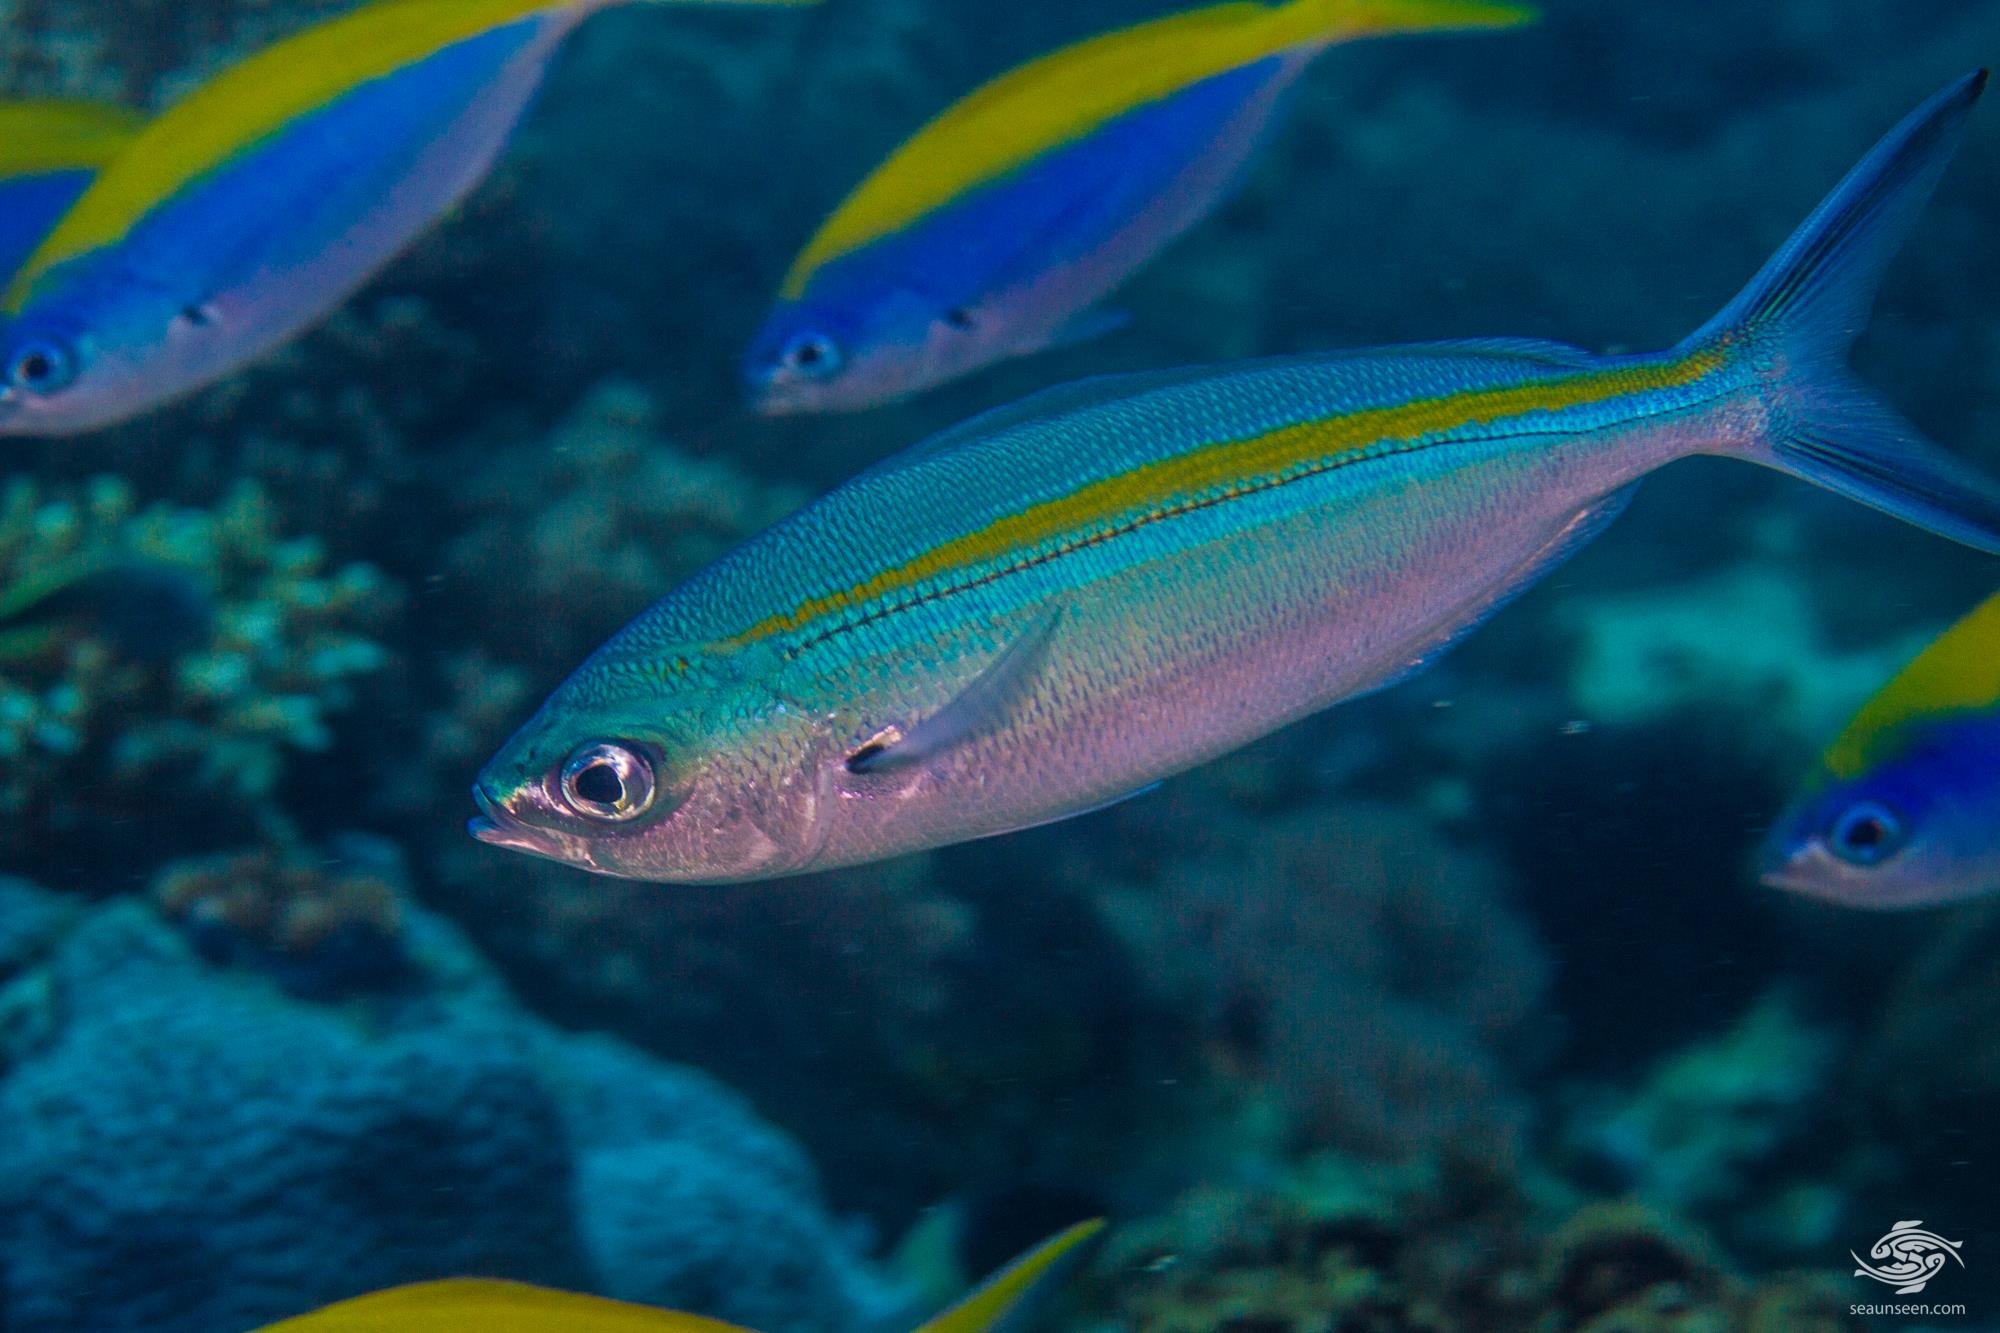 Blue and Gold Fusilier (Caesio caerulaurea) is also known as the Gold-striped Fusilier and the Scissor Tailed Fusilier